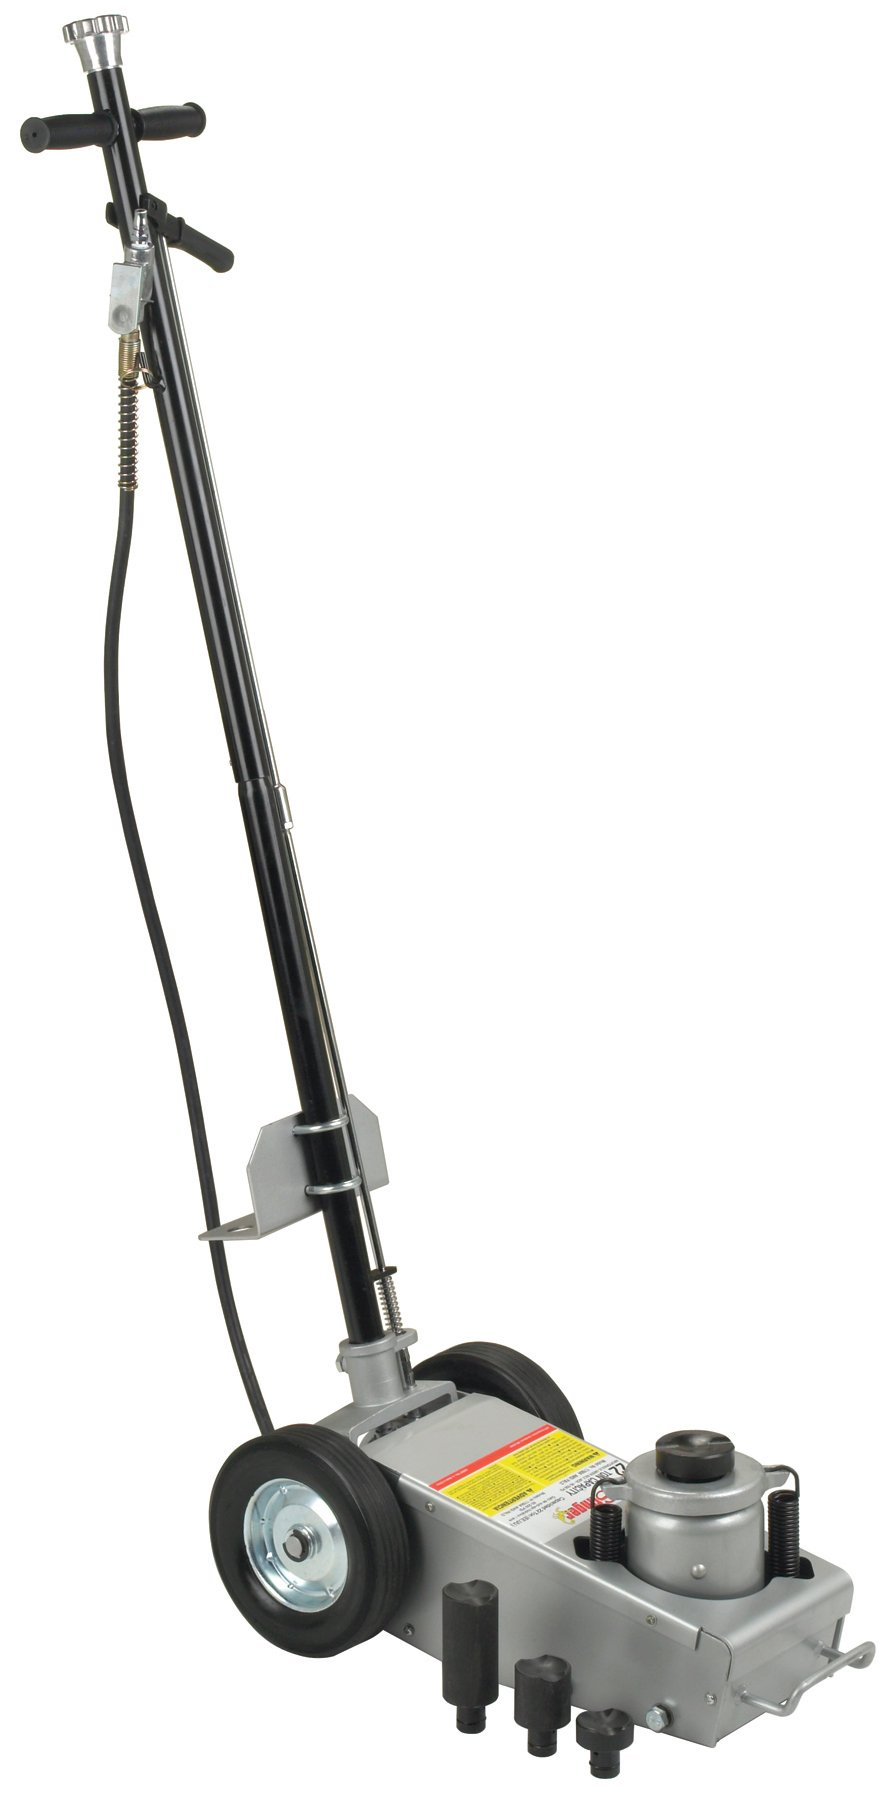 OTC Tools 1788B Under-Axle Jack - 22 Ton Capacity